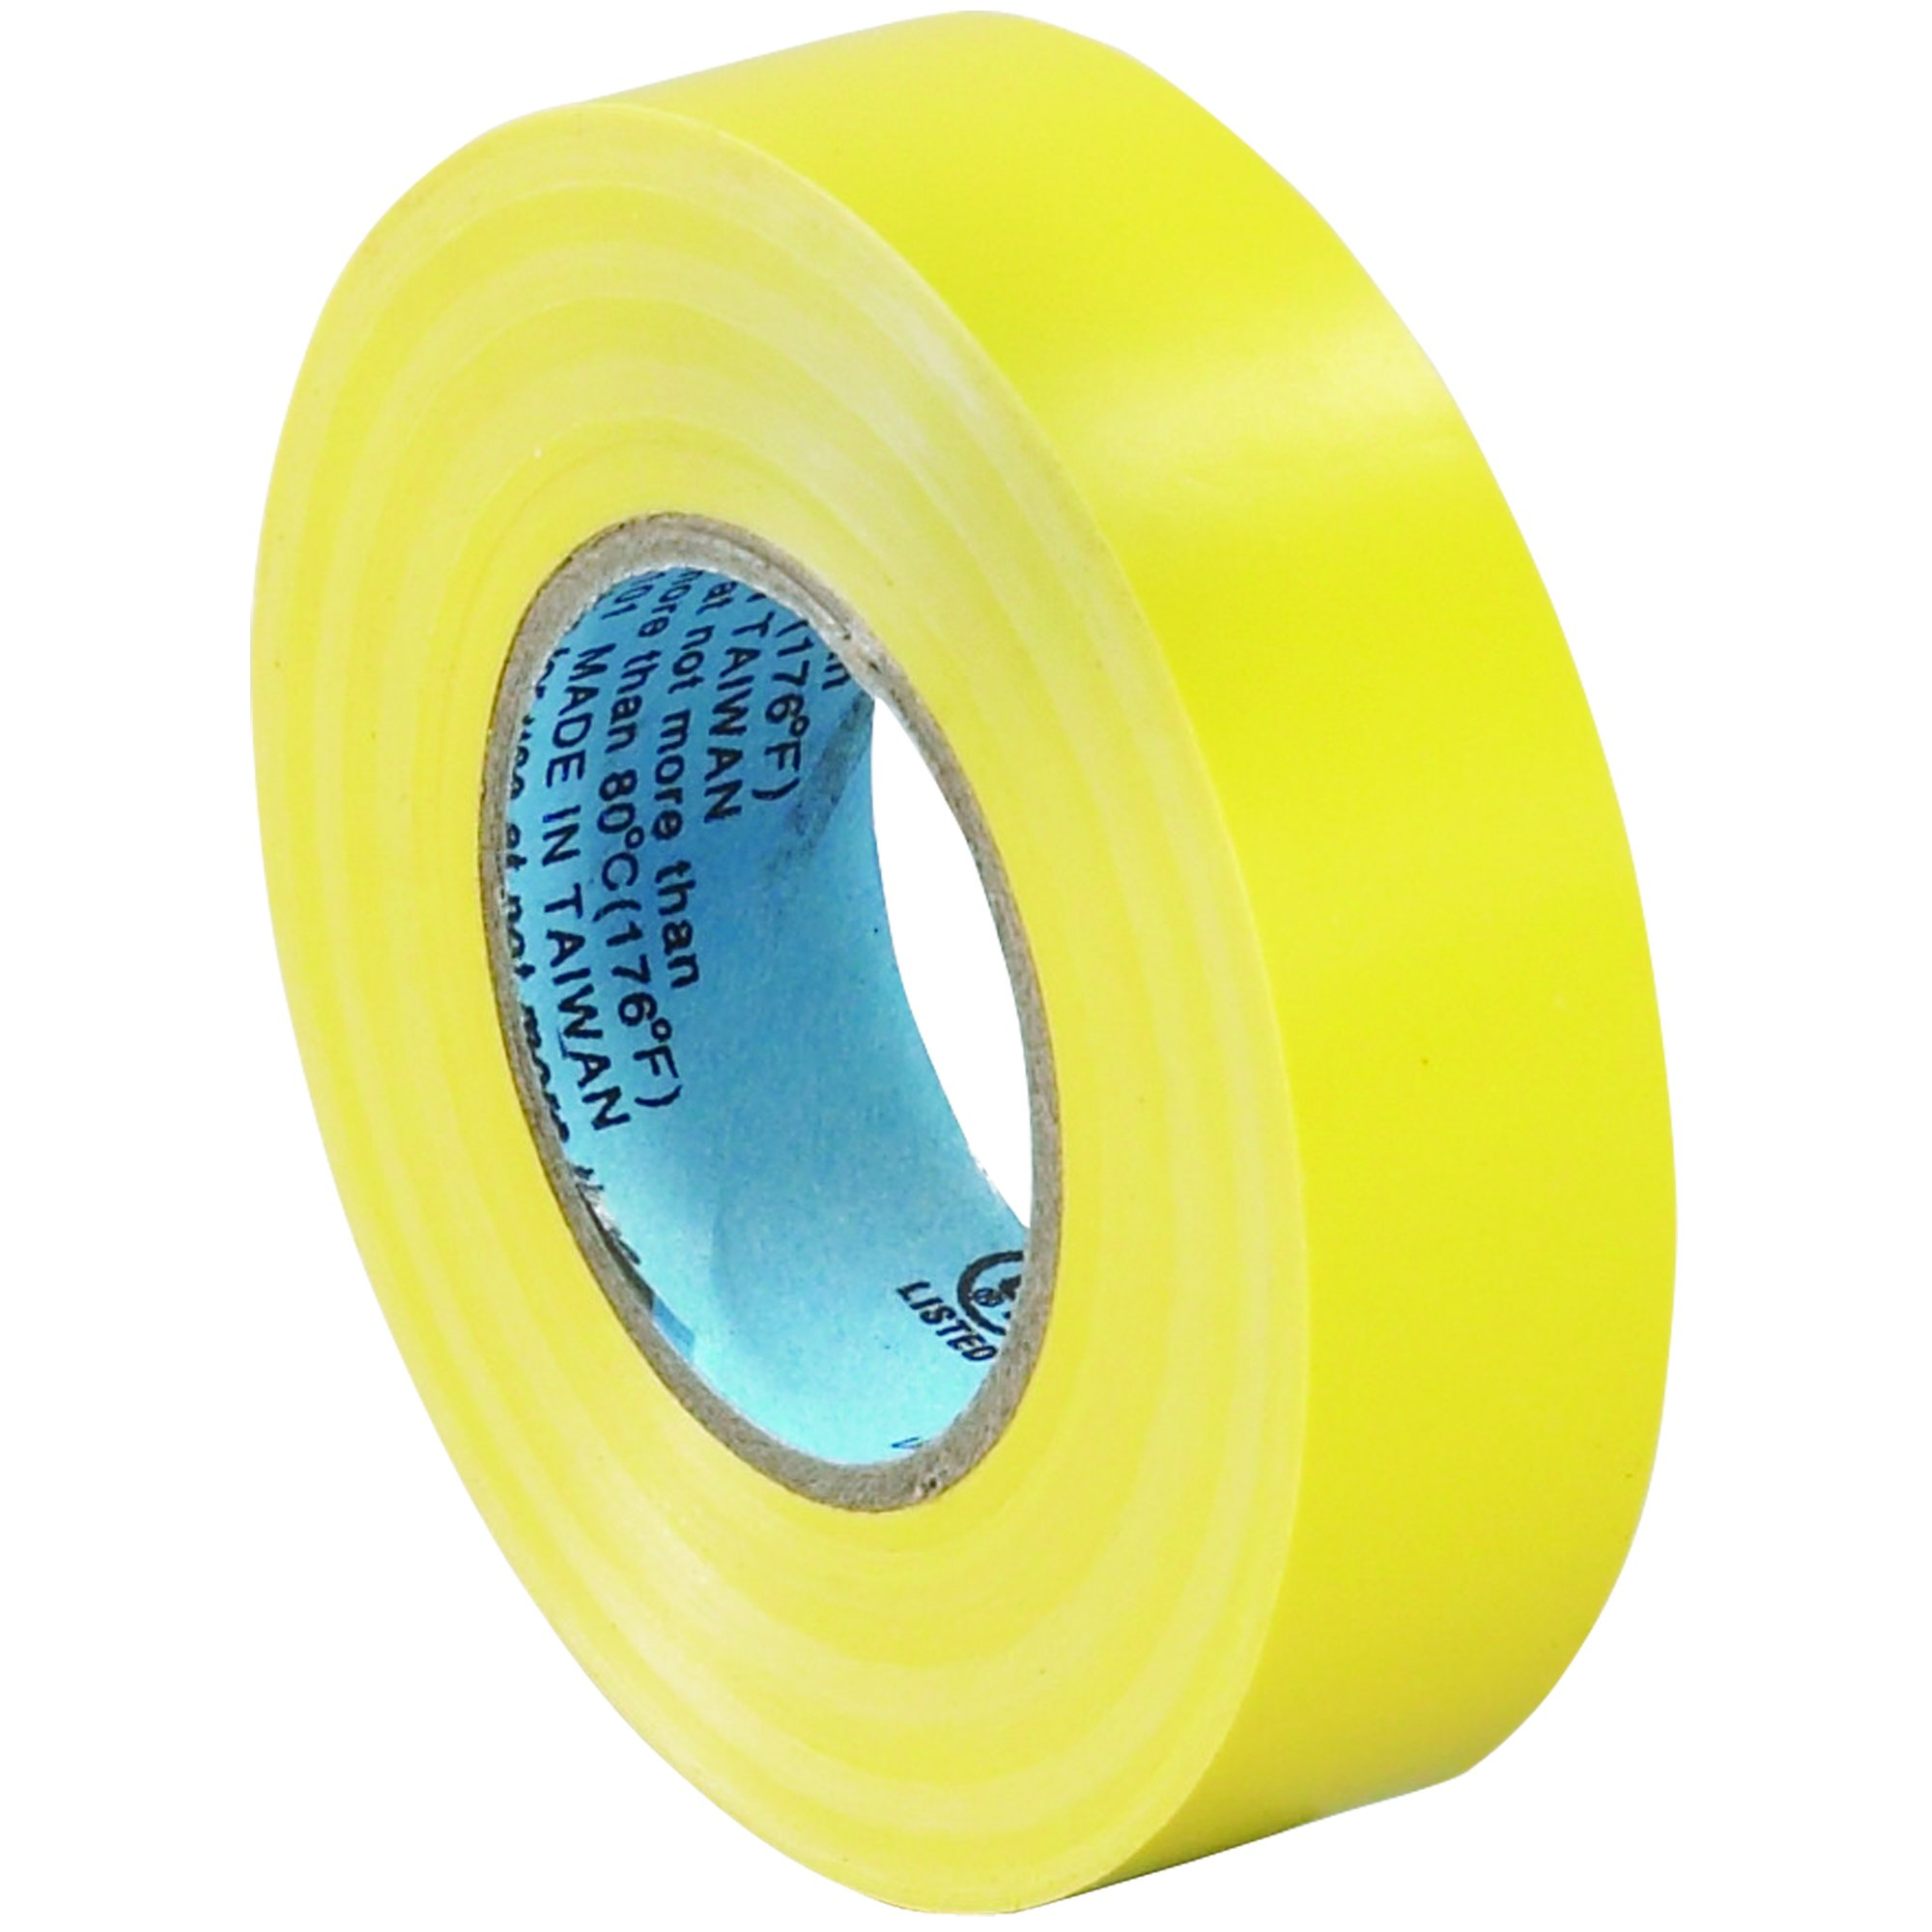 BOX BT96461810PKY Yellow Electrical Tape, 20 yd. Length, 3/4'' (Pack of 10) by Box